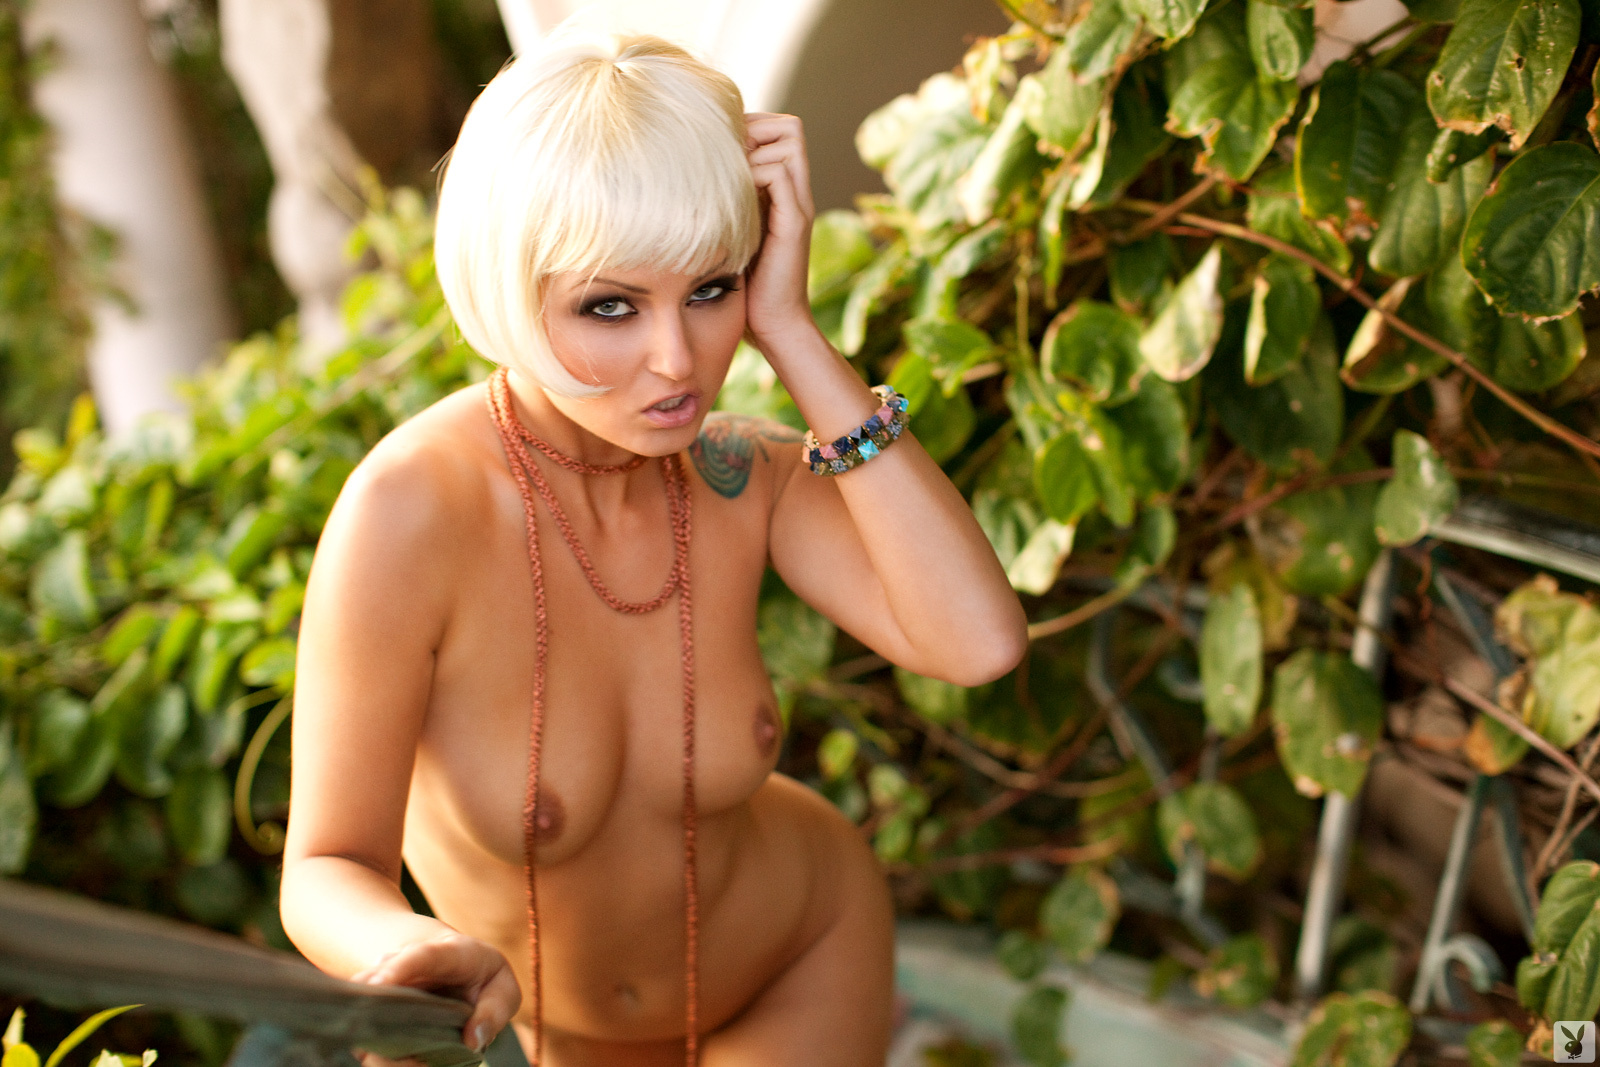 veronica-lavery-blonde-naked-playboy-15